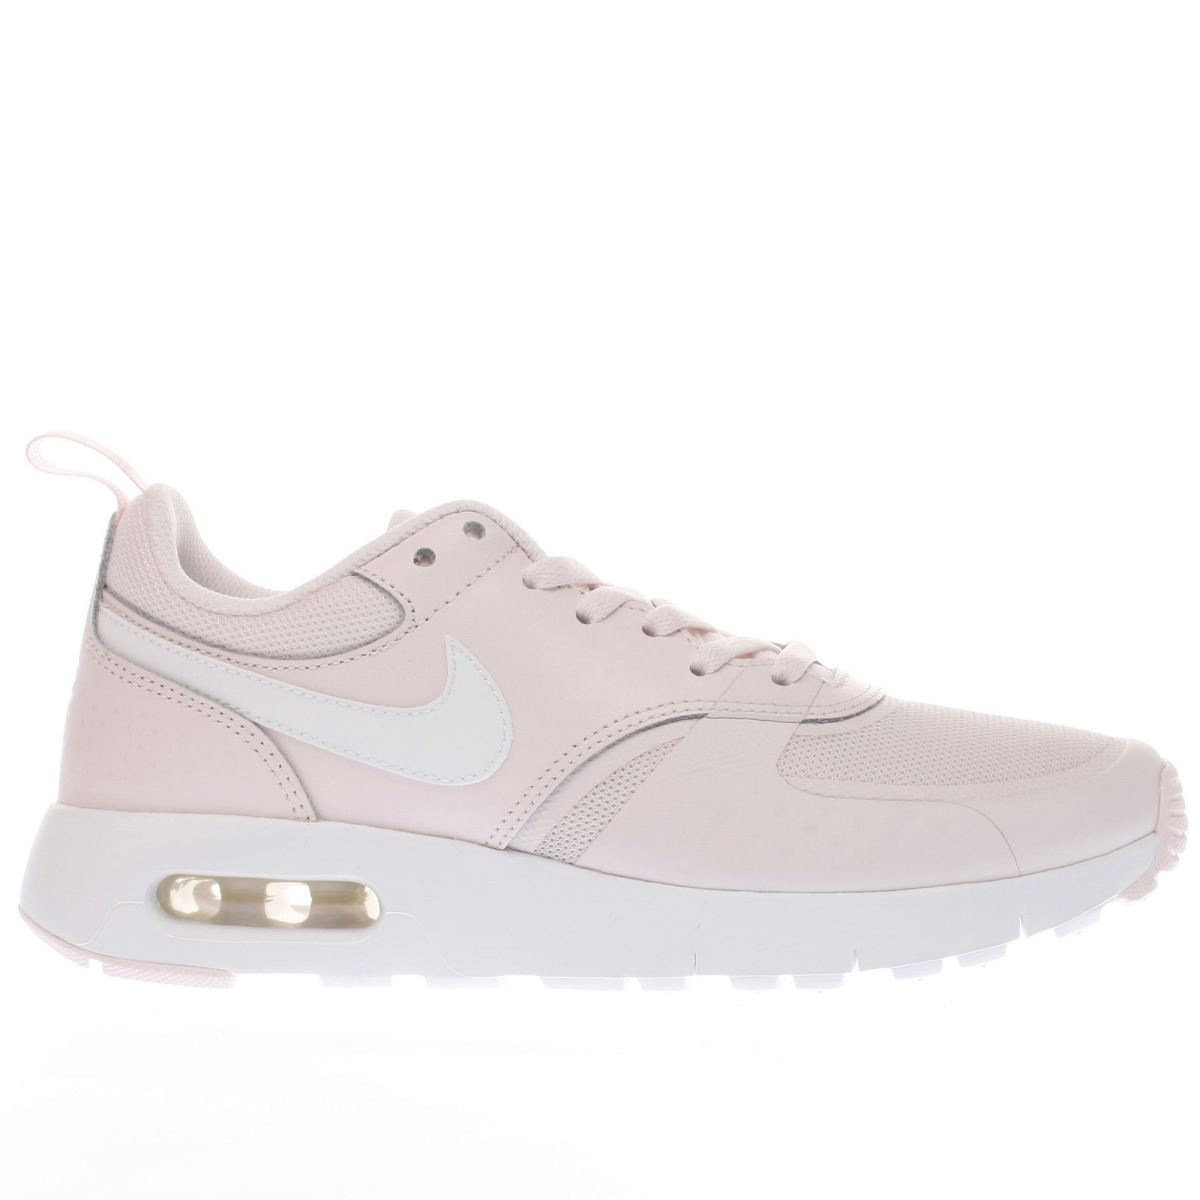 nike pale pink air max vision Girls Youth Trainers